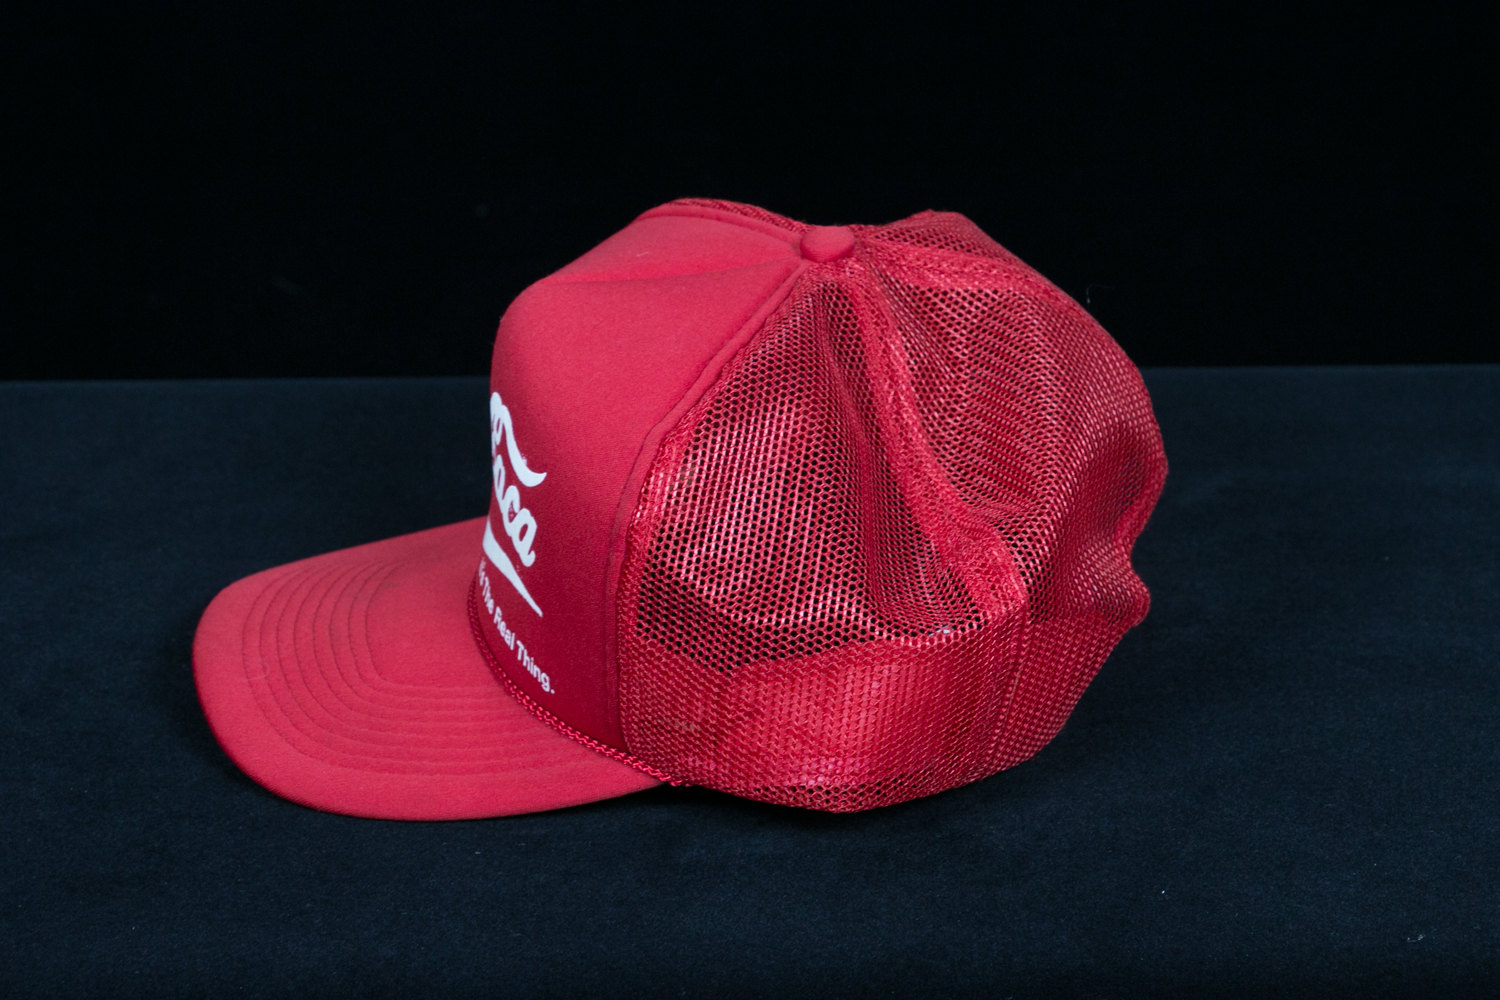 """Vintage 1980's Come Caca Coca Cola (""""Eat Shit"""") Spanish Trucker Cap - Anti-Corporate, Hipster, Indie"""